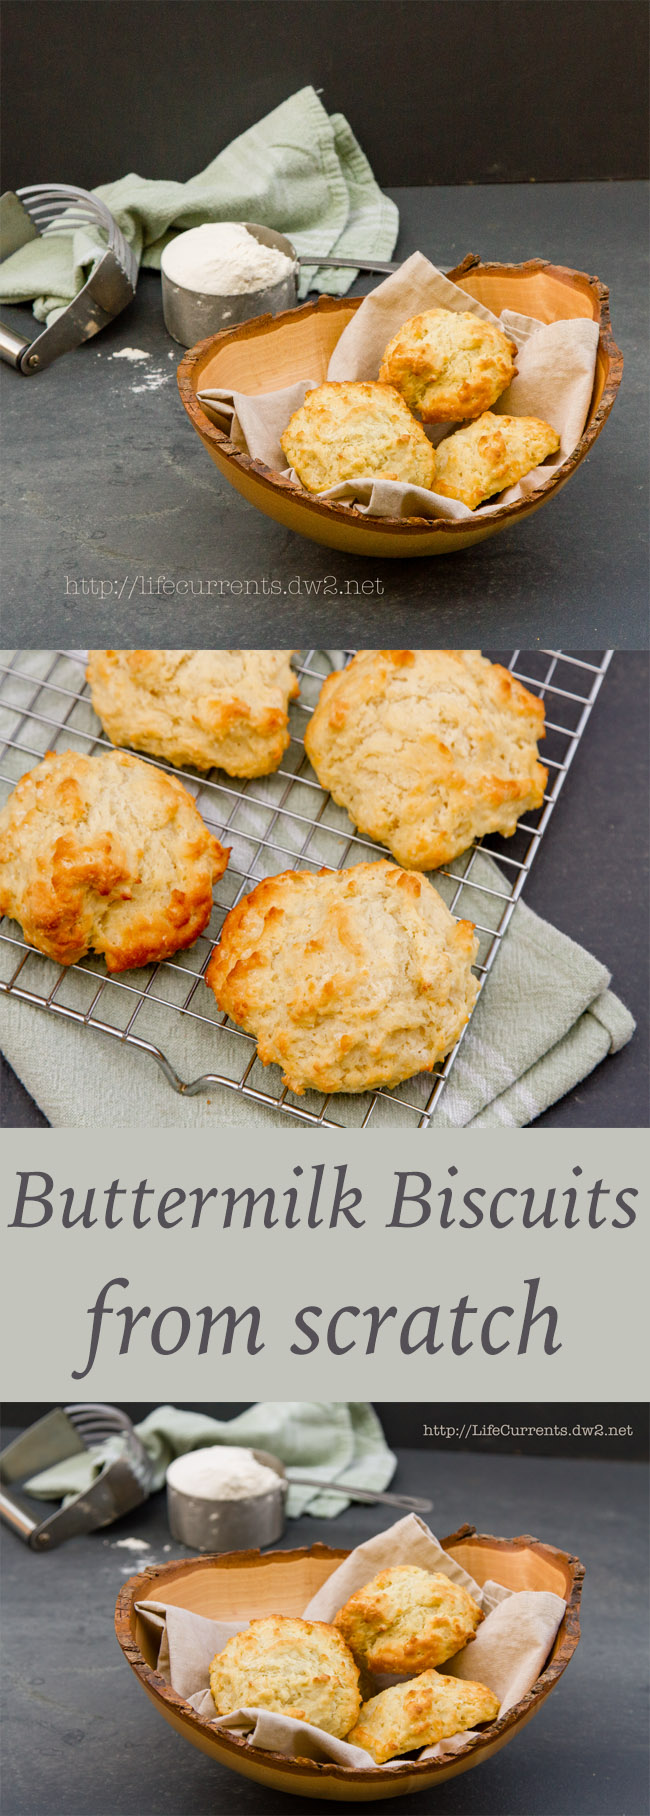 Fresh Buttermilk Biscuits from scratch are a no fail delicious side to your dinner!